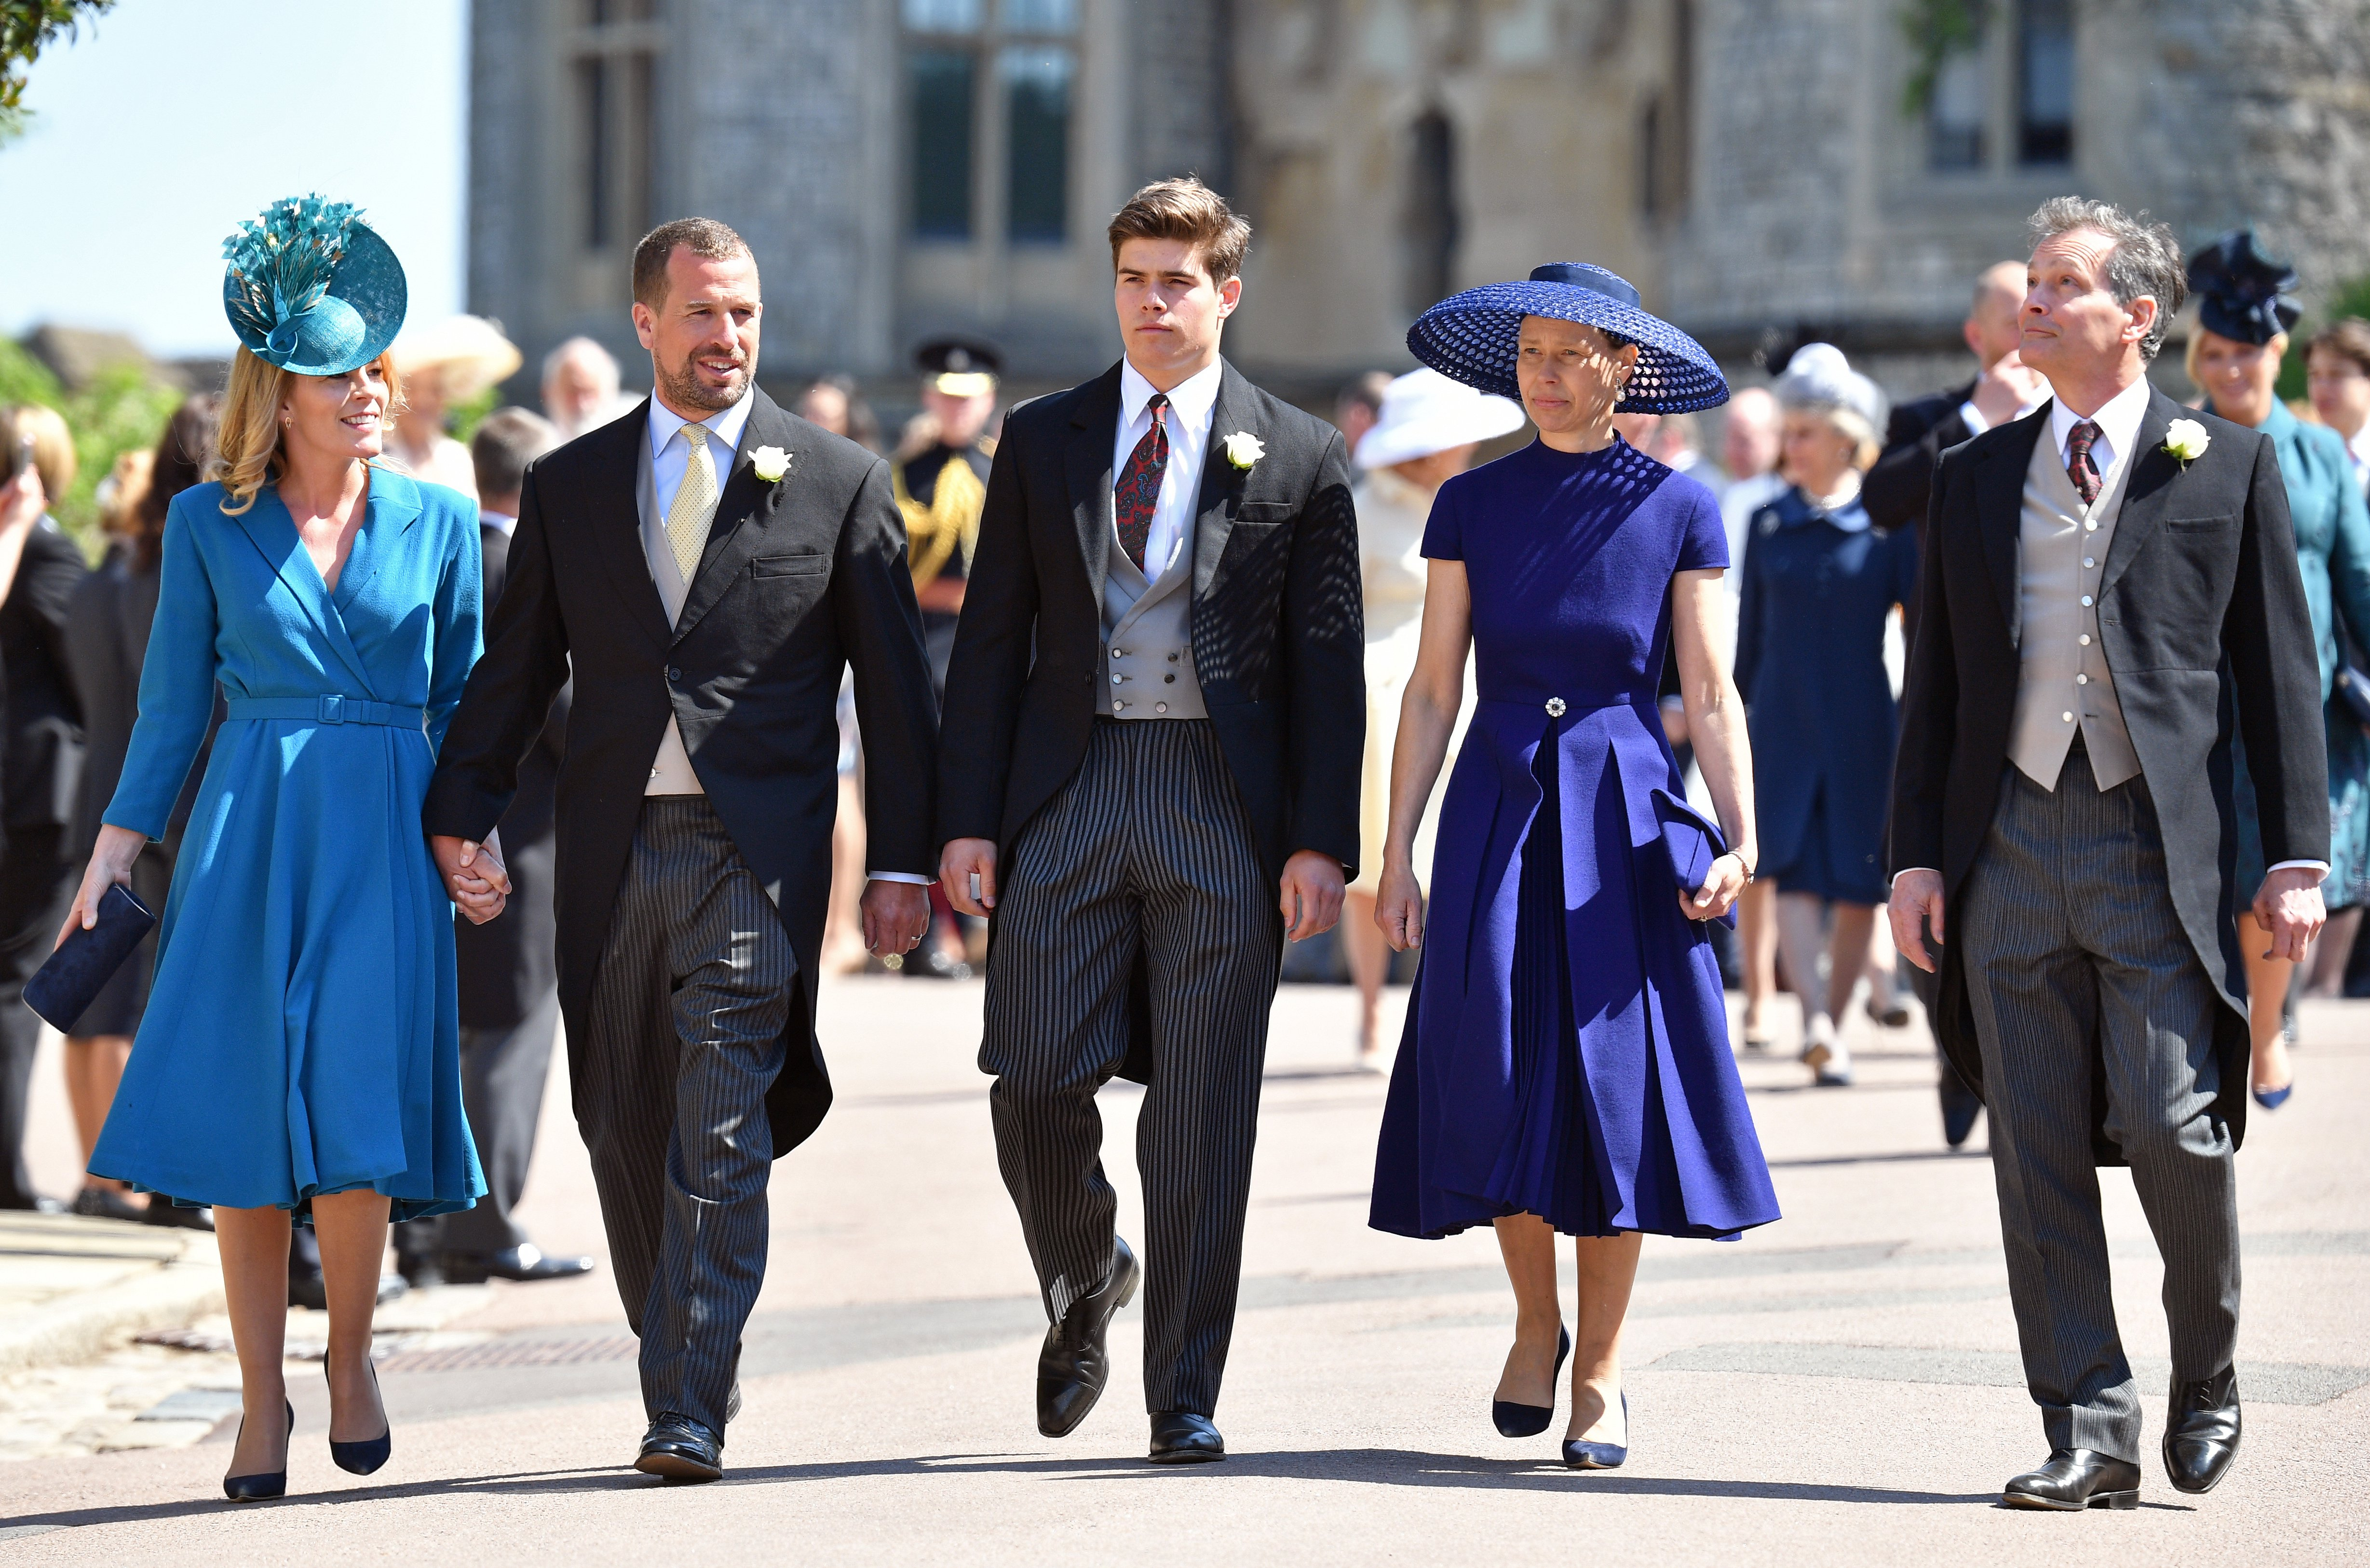 Autumn Phillips, Peter Phillips, Arthur Chatto, Lady Sarah Chatto and Daniel Chatto attend the wedding of Prince Harry to Ms Meghan Markle on May 19, 2018, in Windsor, England. | Source: Getty Images.